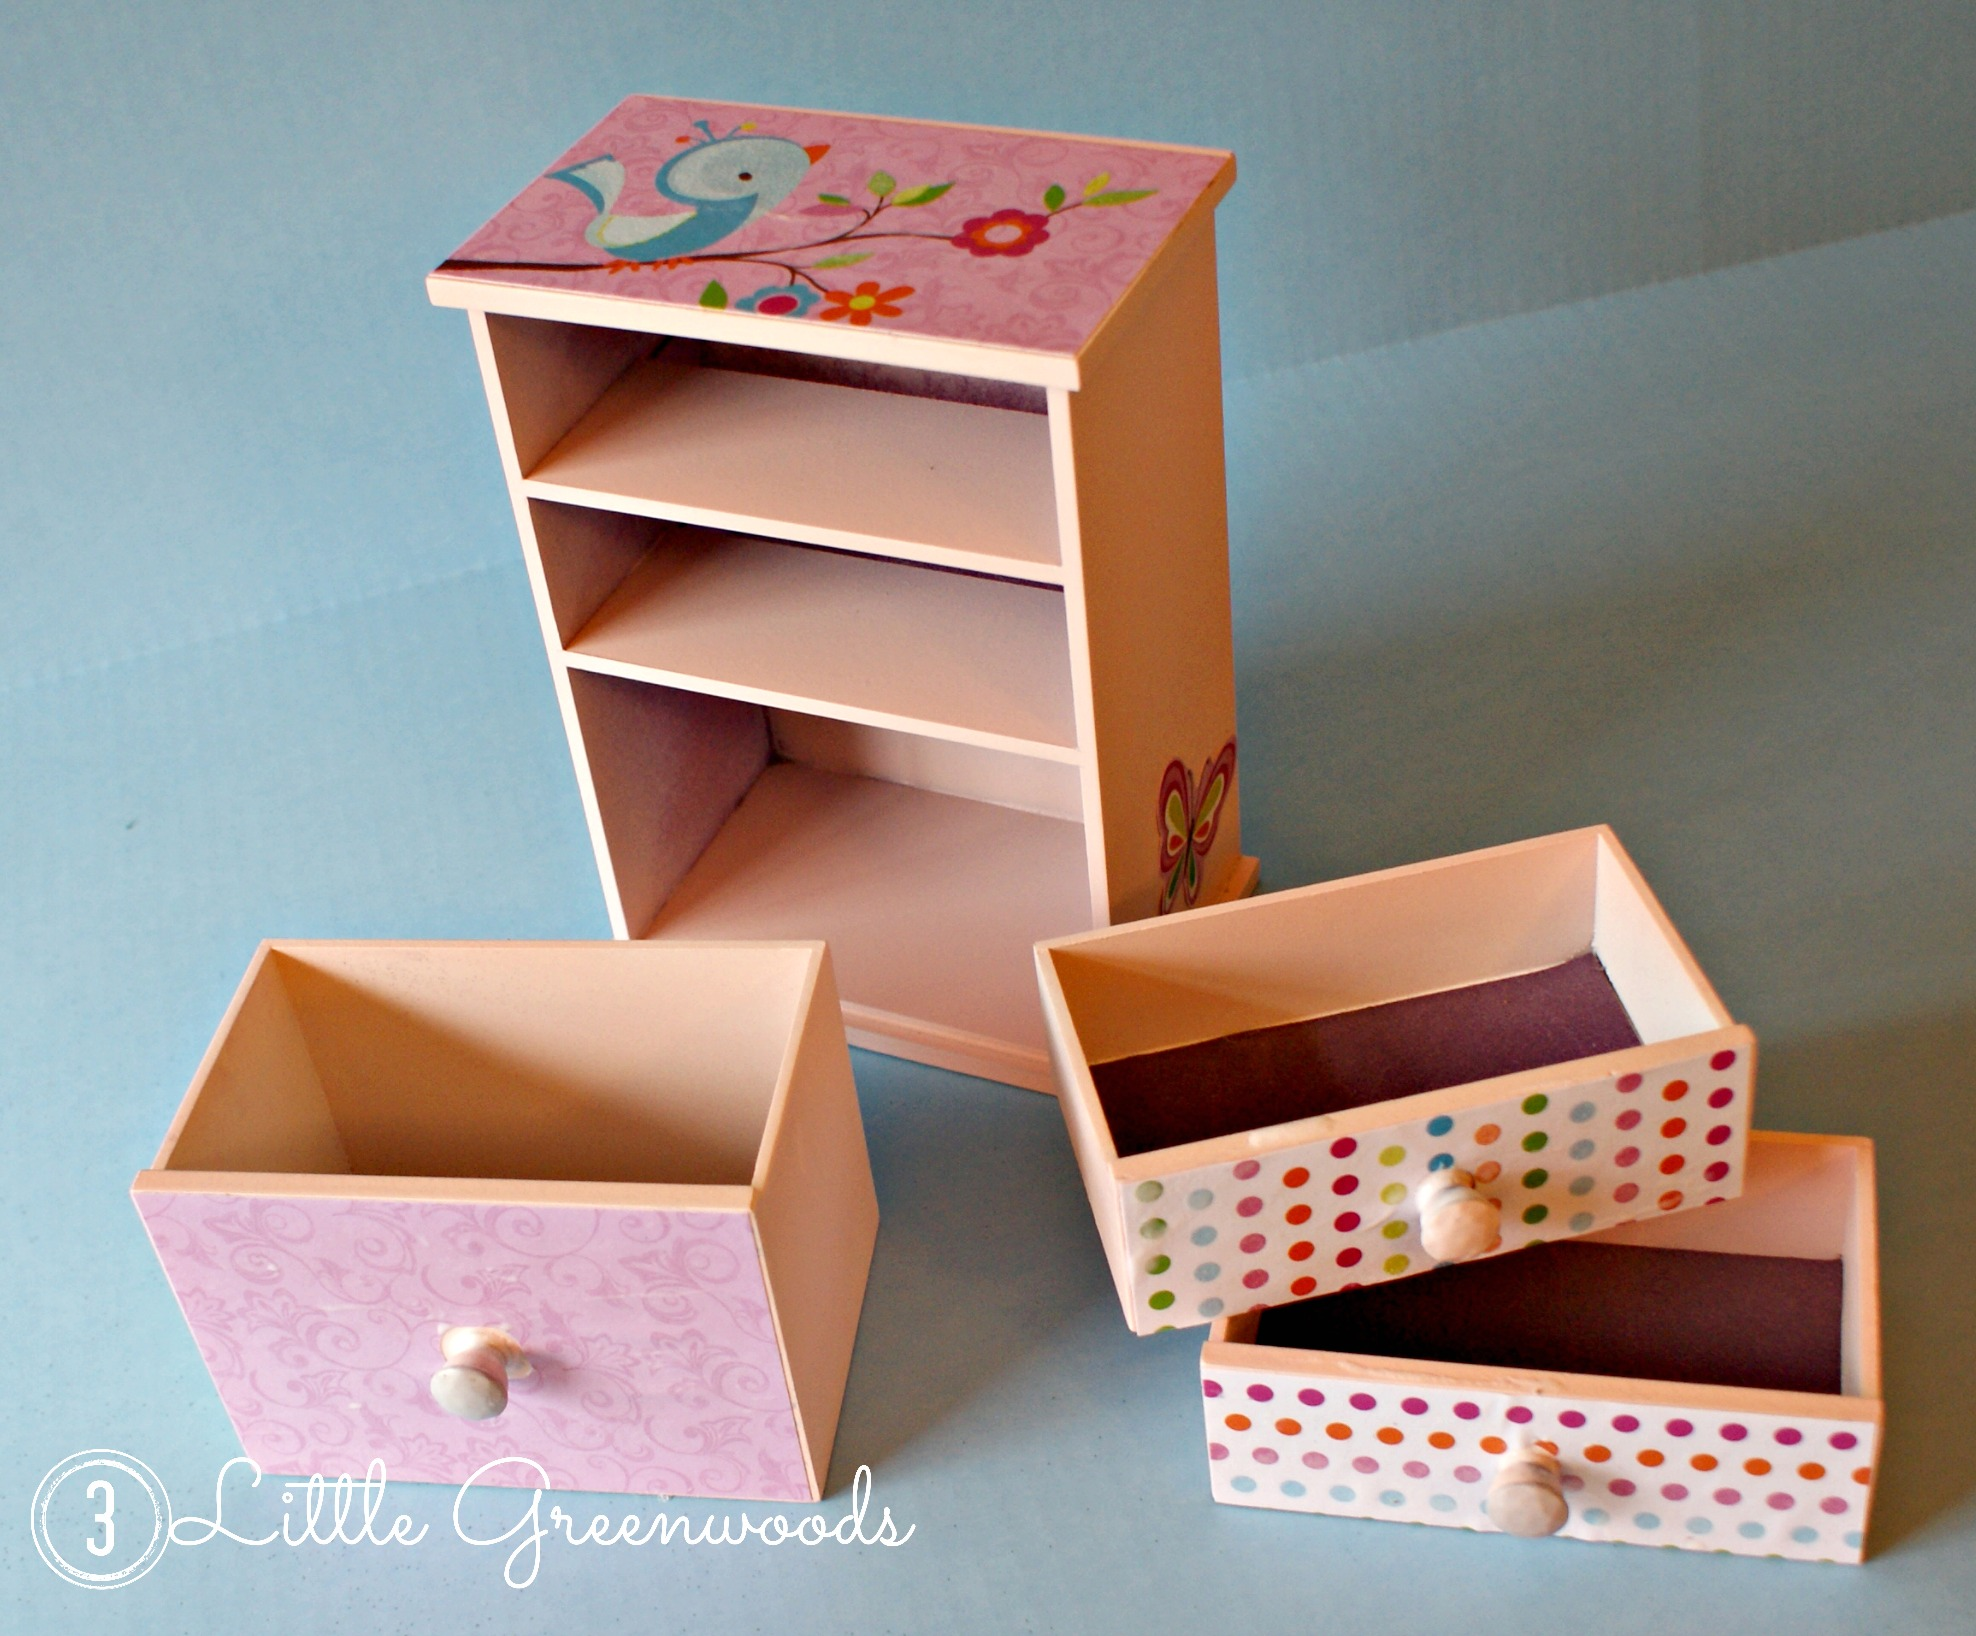 Upcycled Little Girl S Jewelry Box 3 Little Greenwoods